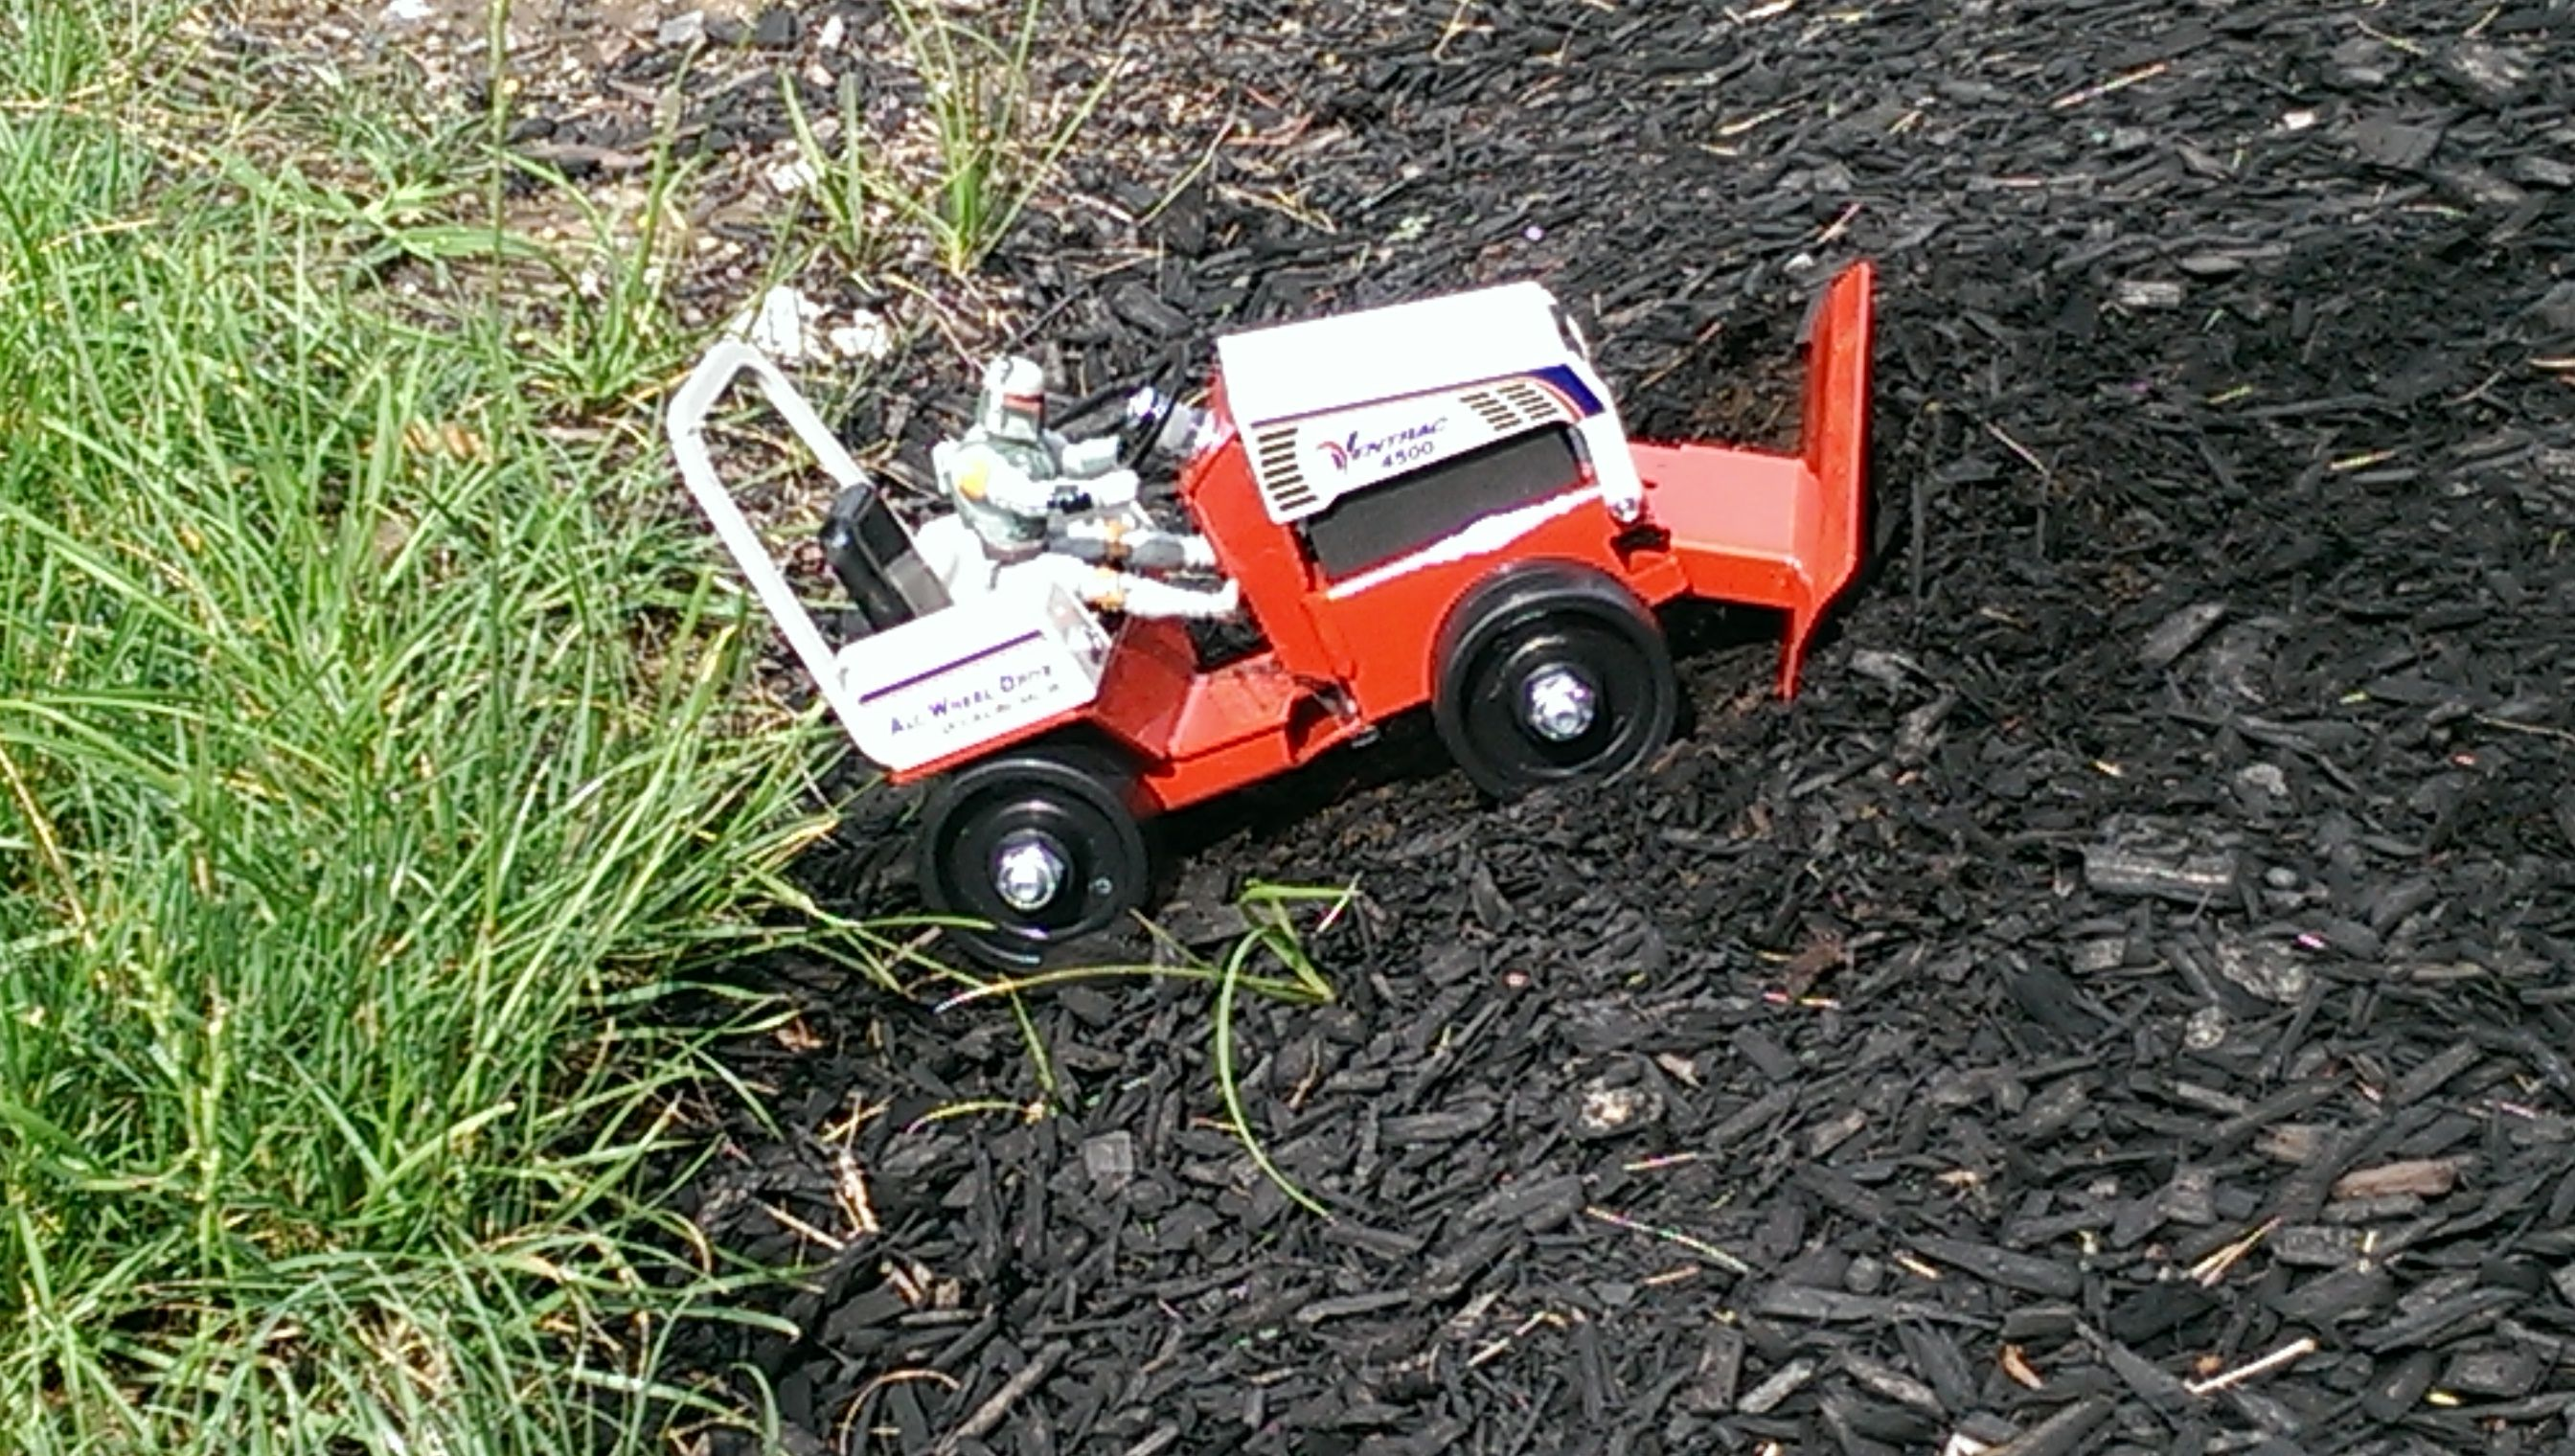 Boba Fett prefers Ventrac over any other tractors. He ...